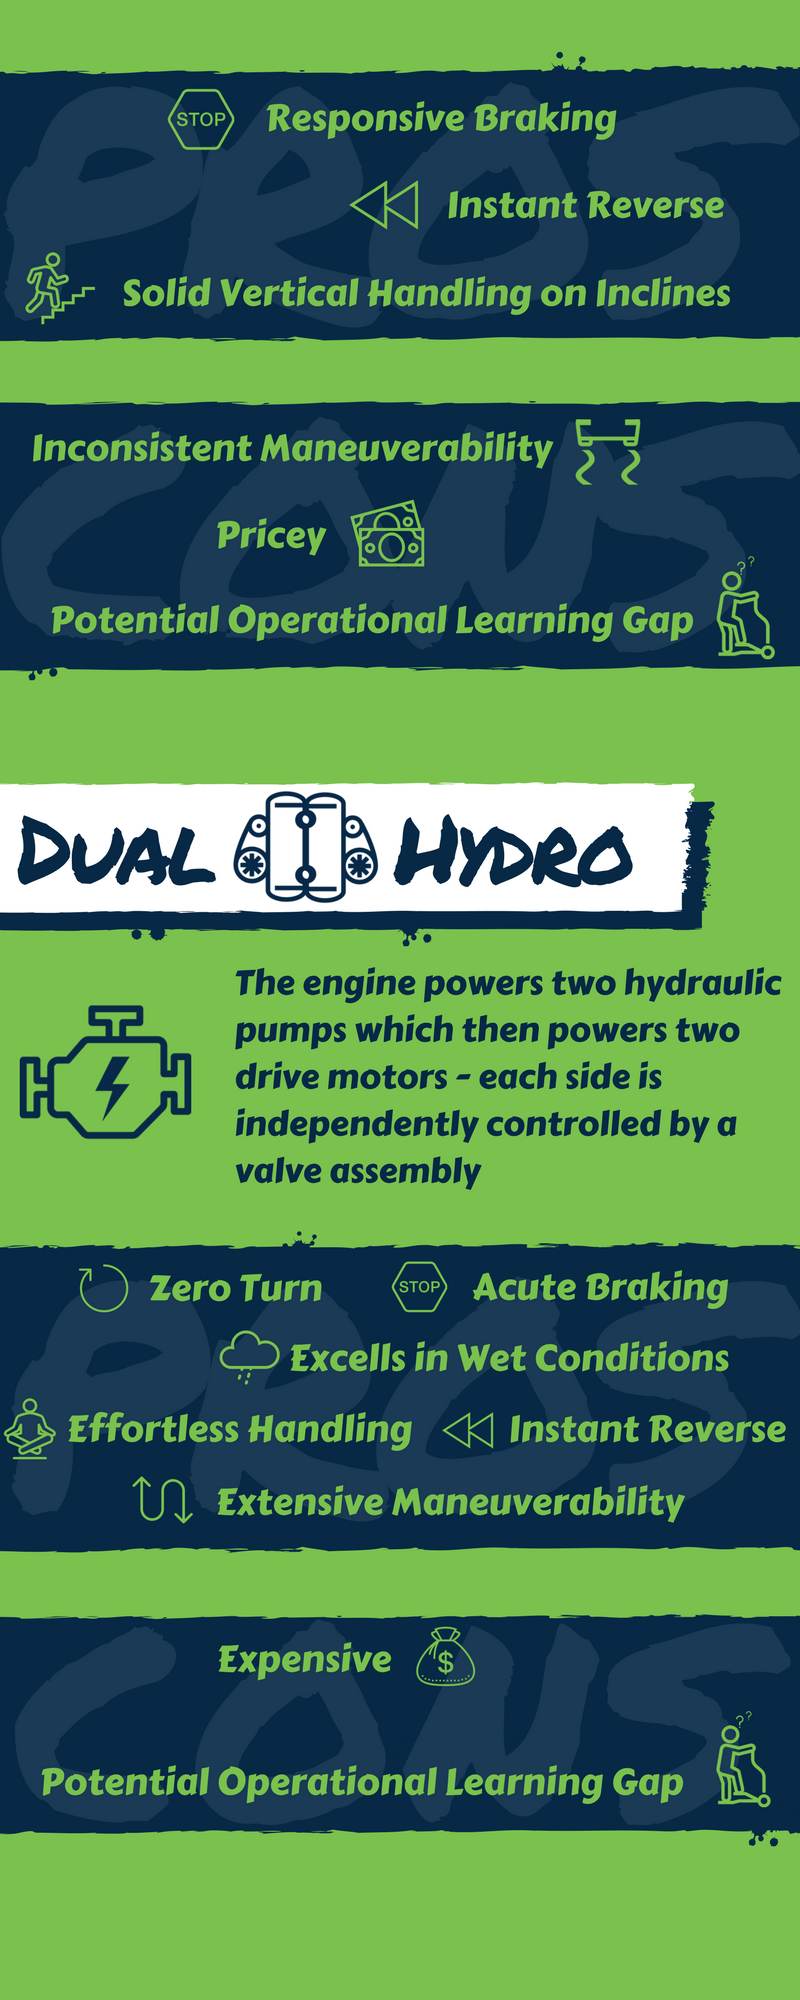 Comparing Commercial Walk Behind Mowers- Belt Drive vs. Hydrostatic (1).png